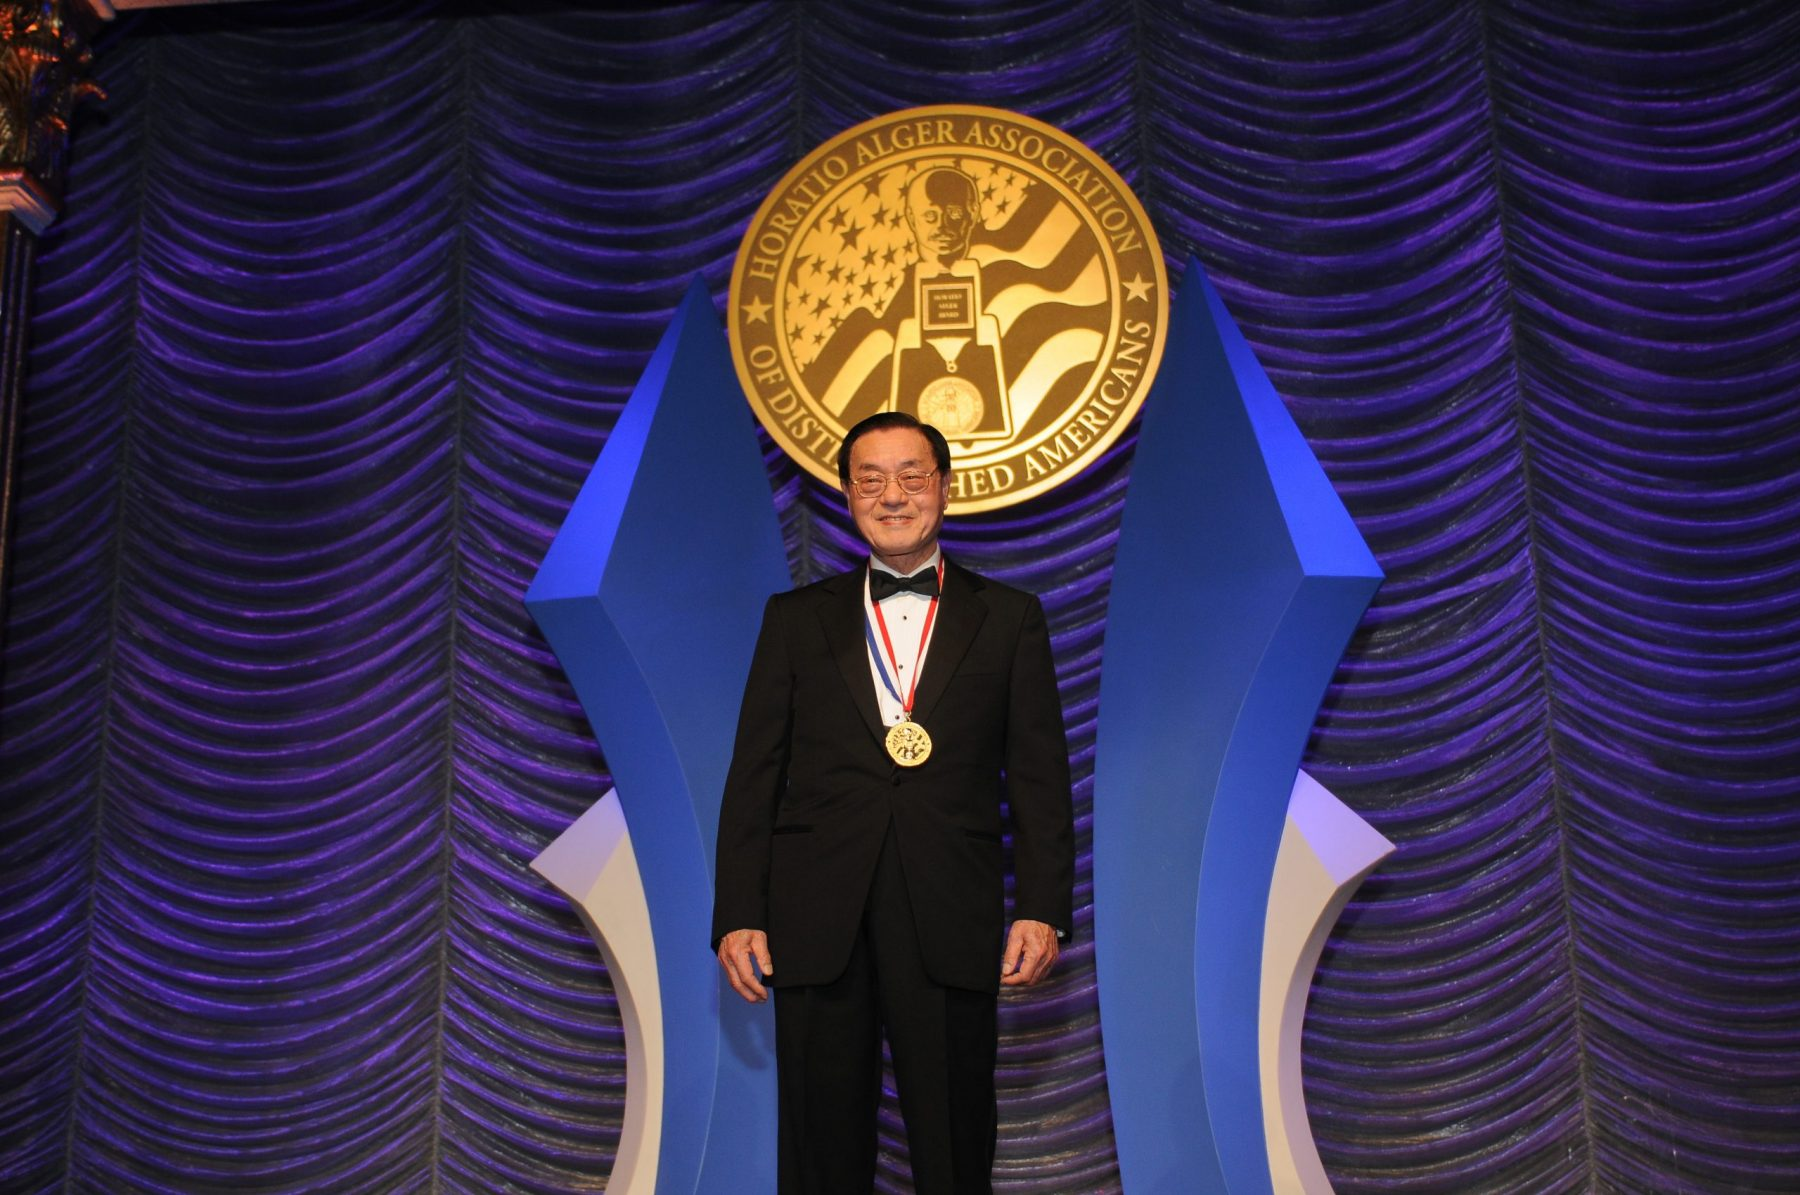 Dr. James S. C. Chao, awardee at the Horatio Alger Association of Distinguished Americans 65th Annual Gala.